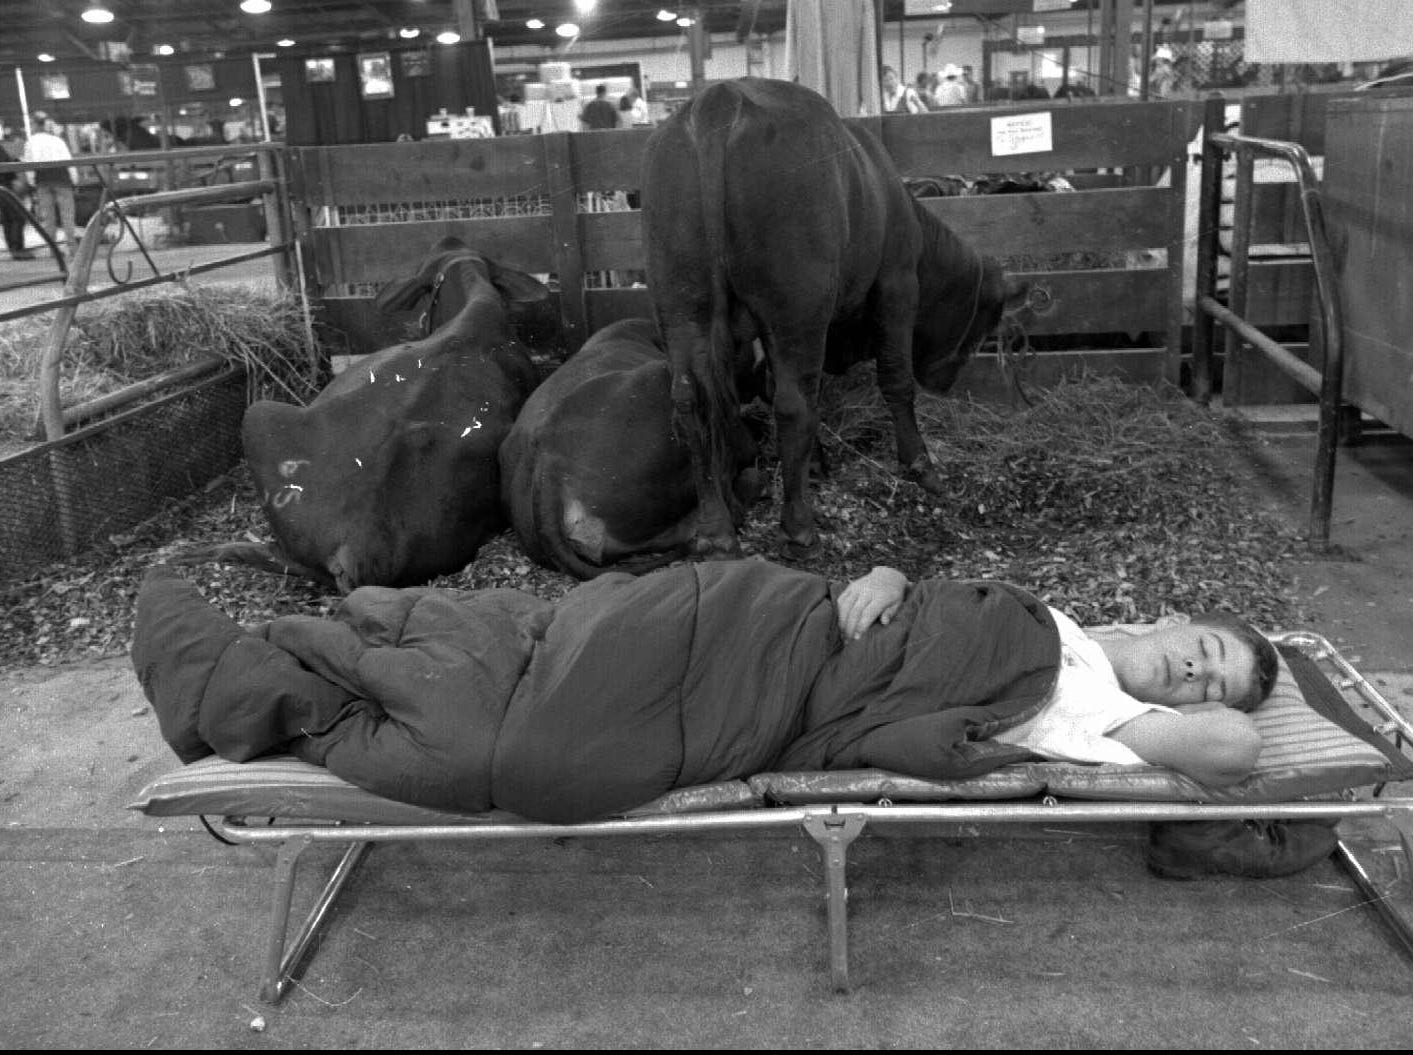 Ty Stogsdill of Bloomington, Indiana sleeps in front of his beef cattle at the Kentucky State Fair.  He arrived in the middle of the night with his cattle and just finally had time to catch some sleep.